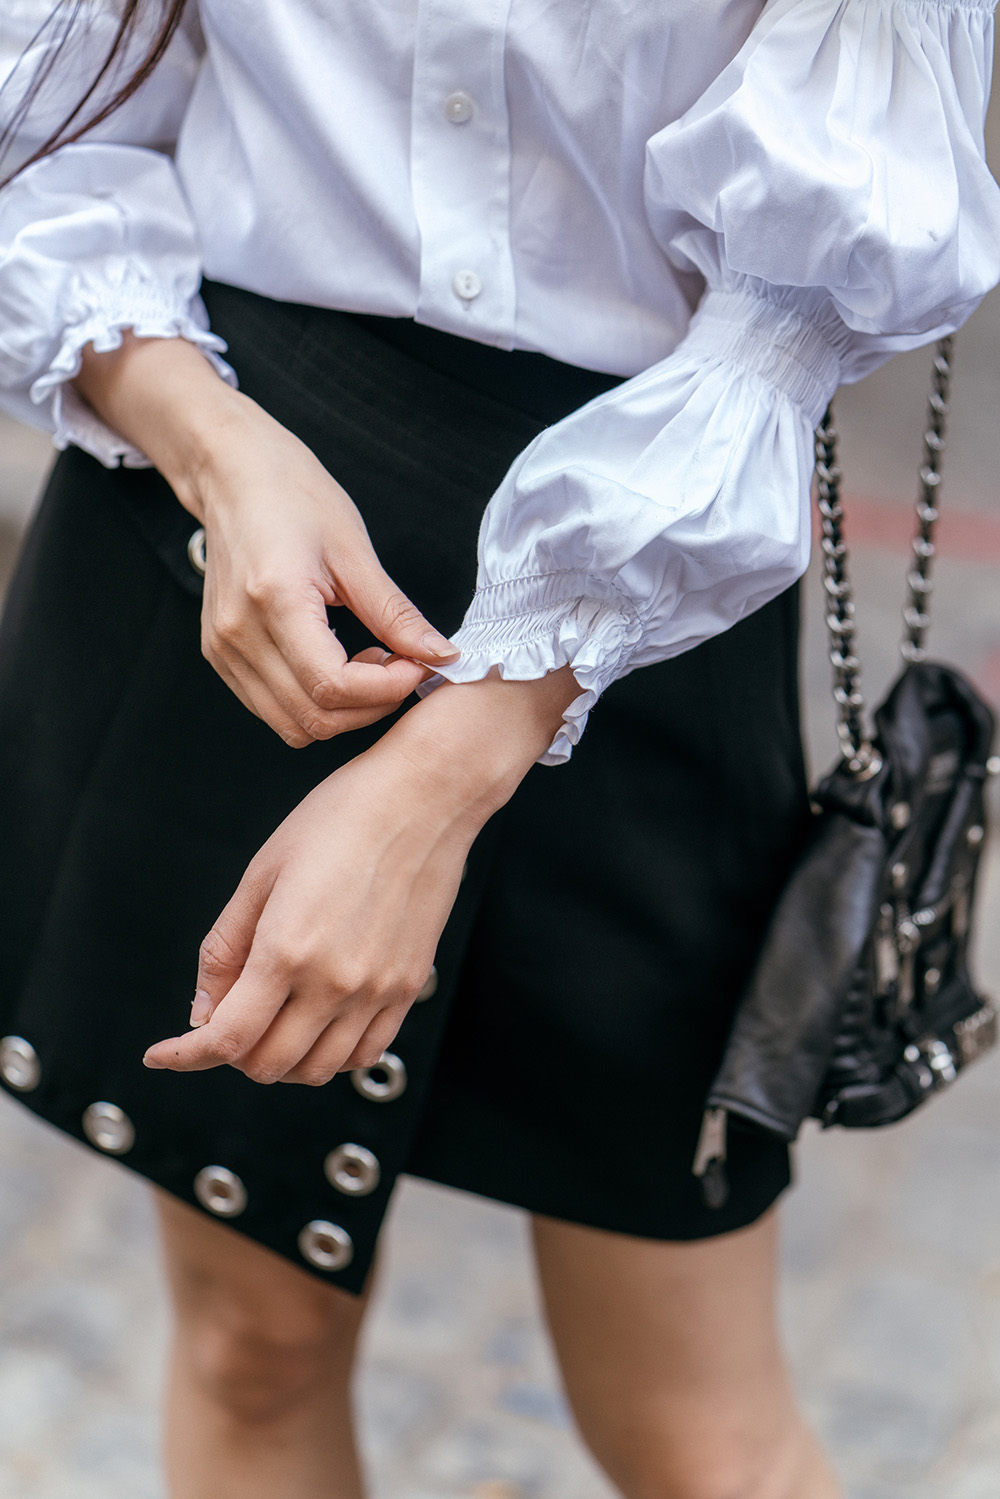 Embracing 80s Fashion Trends: Puffy Sleeves | Of Leather and Lace - A Fashion Blog by Tina Lee